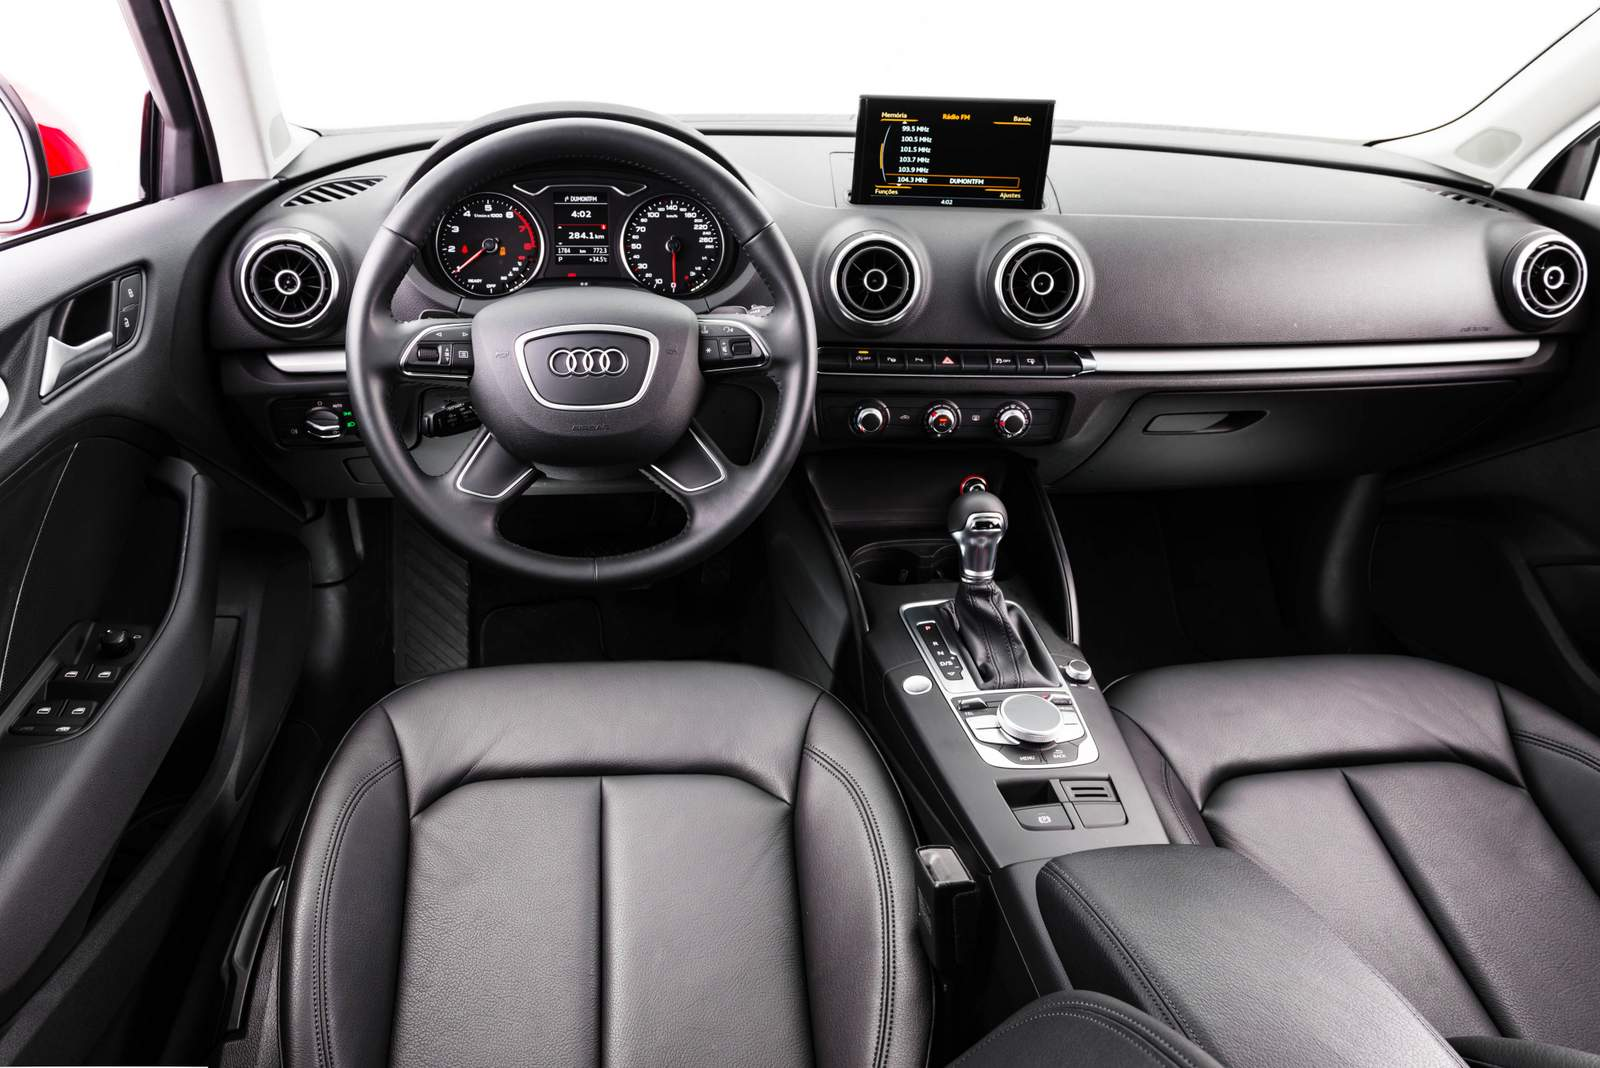 Novo Civic 2017 x Audi A3 Sedan - interior